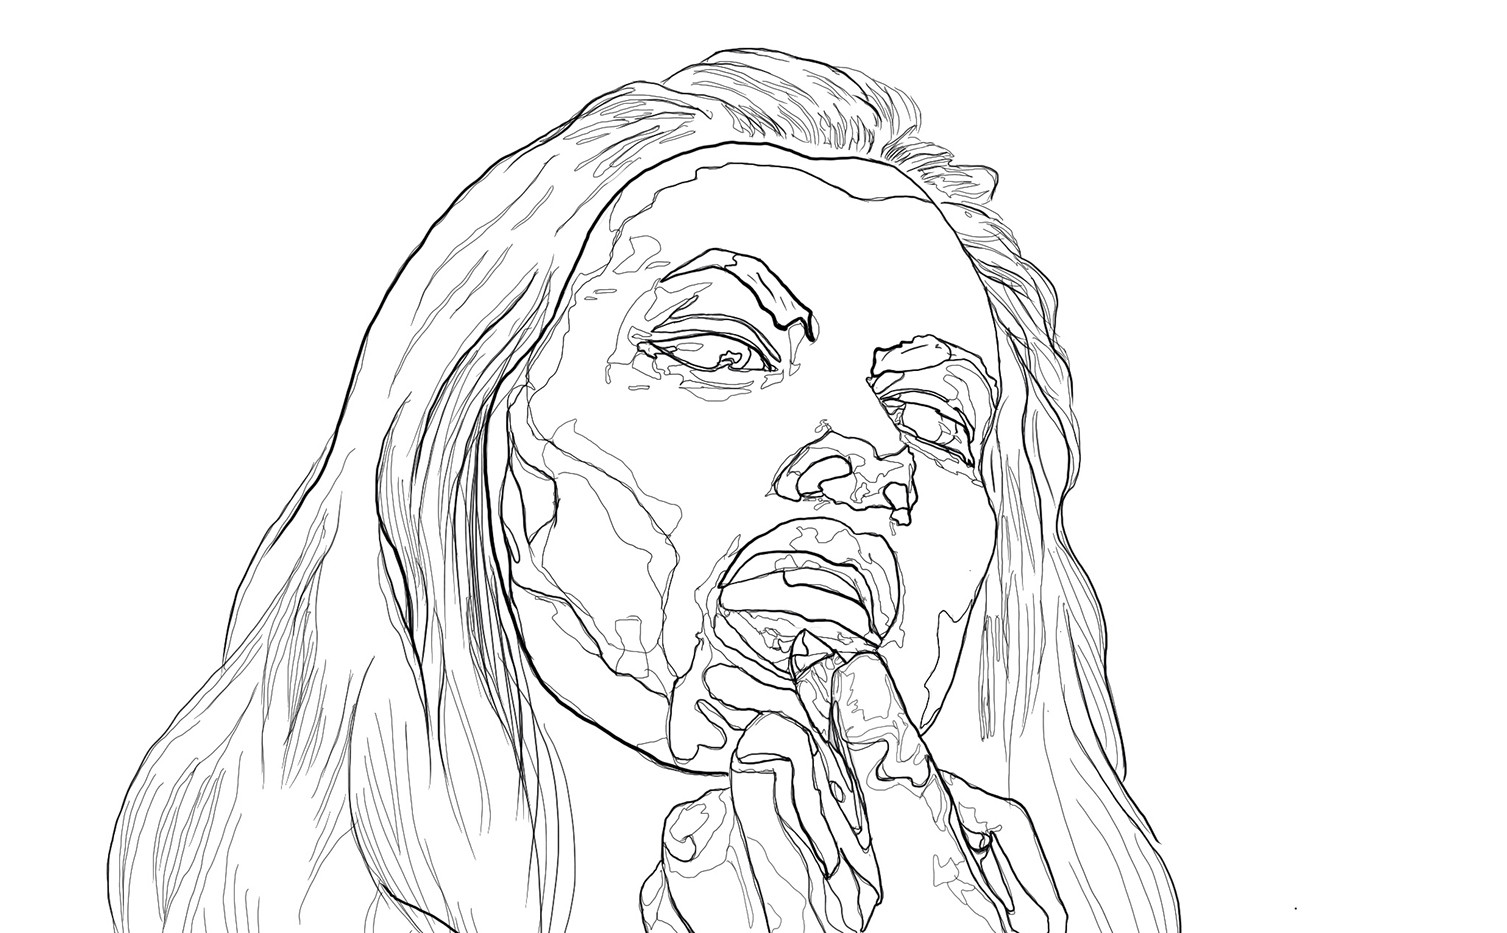 Colouring in image I